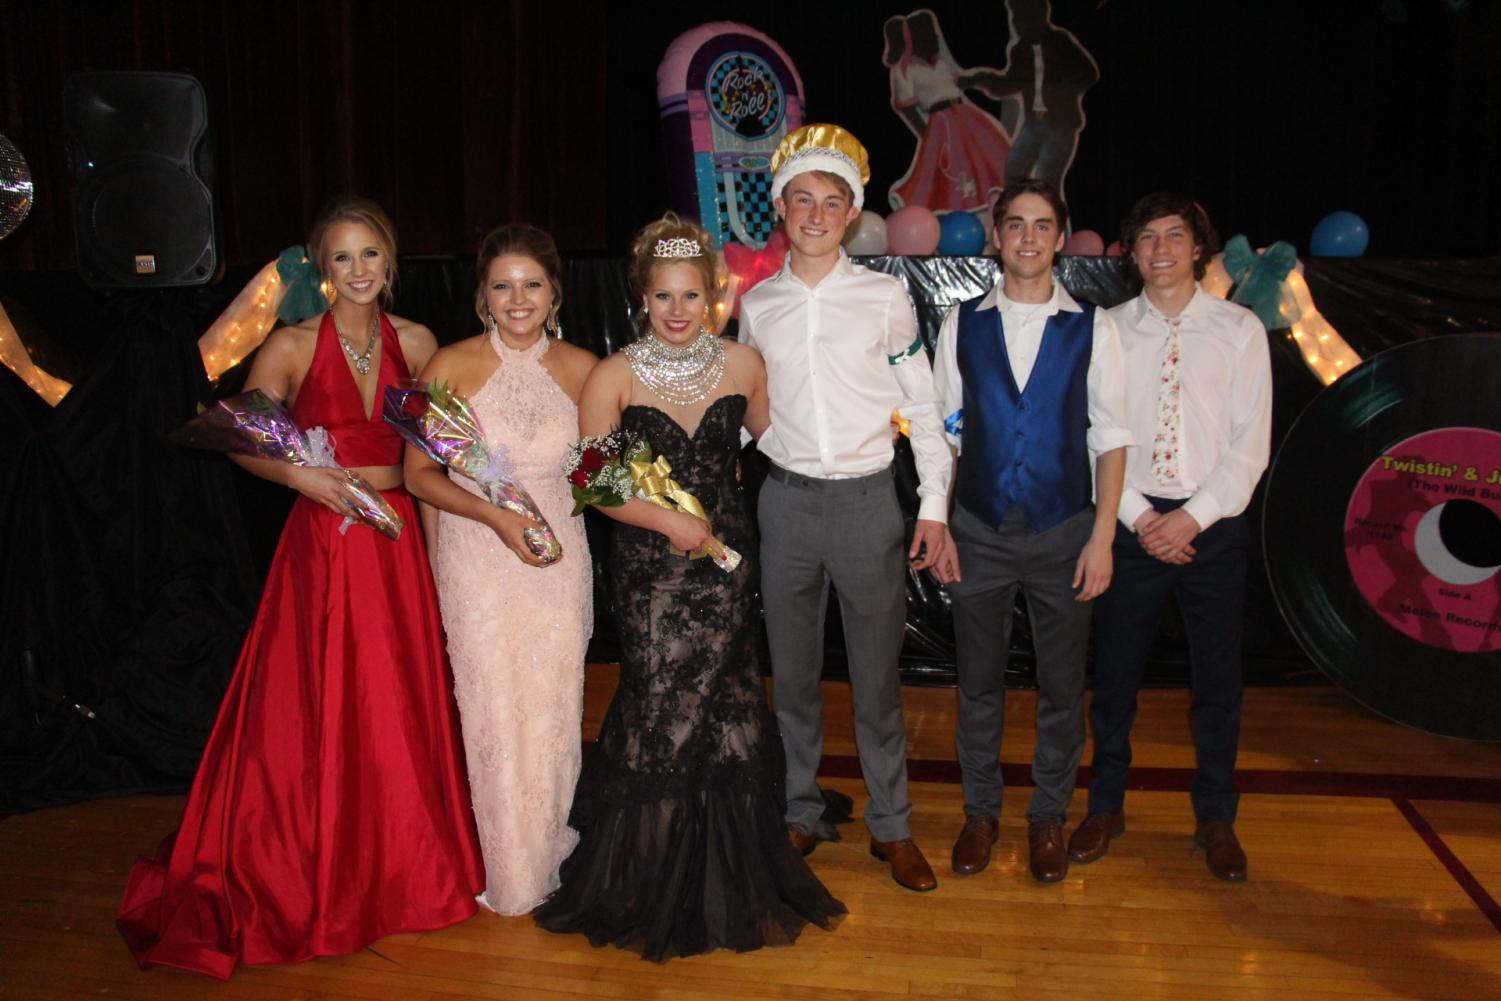 Prom Royalty: Grace Townsend, Sydney Nelson, Queen Natalie Janssen, King Spencer Anderson, Trevor Matousek, Zac Hurlbert